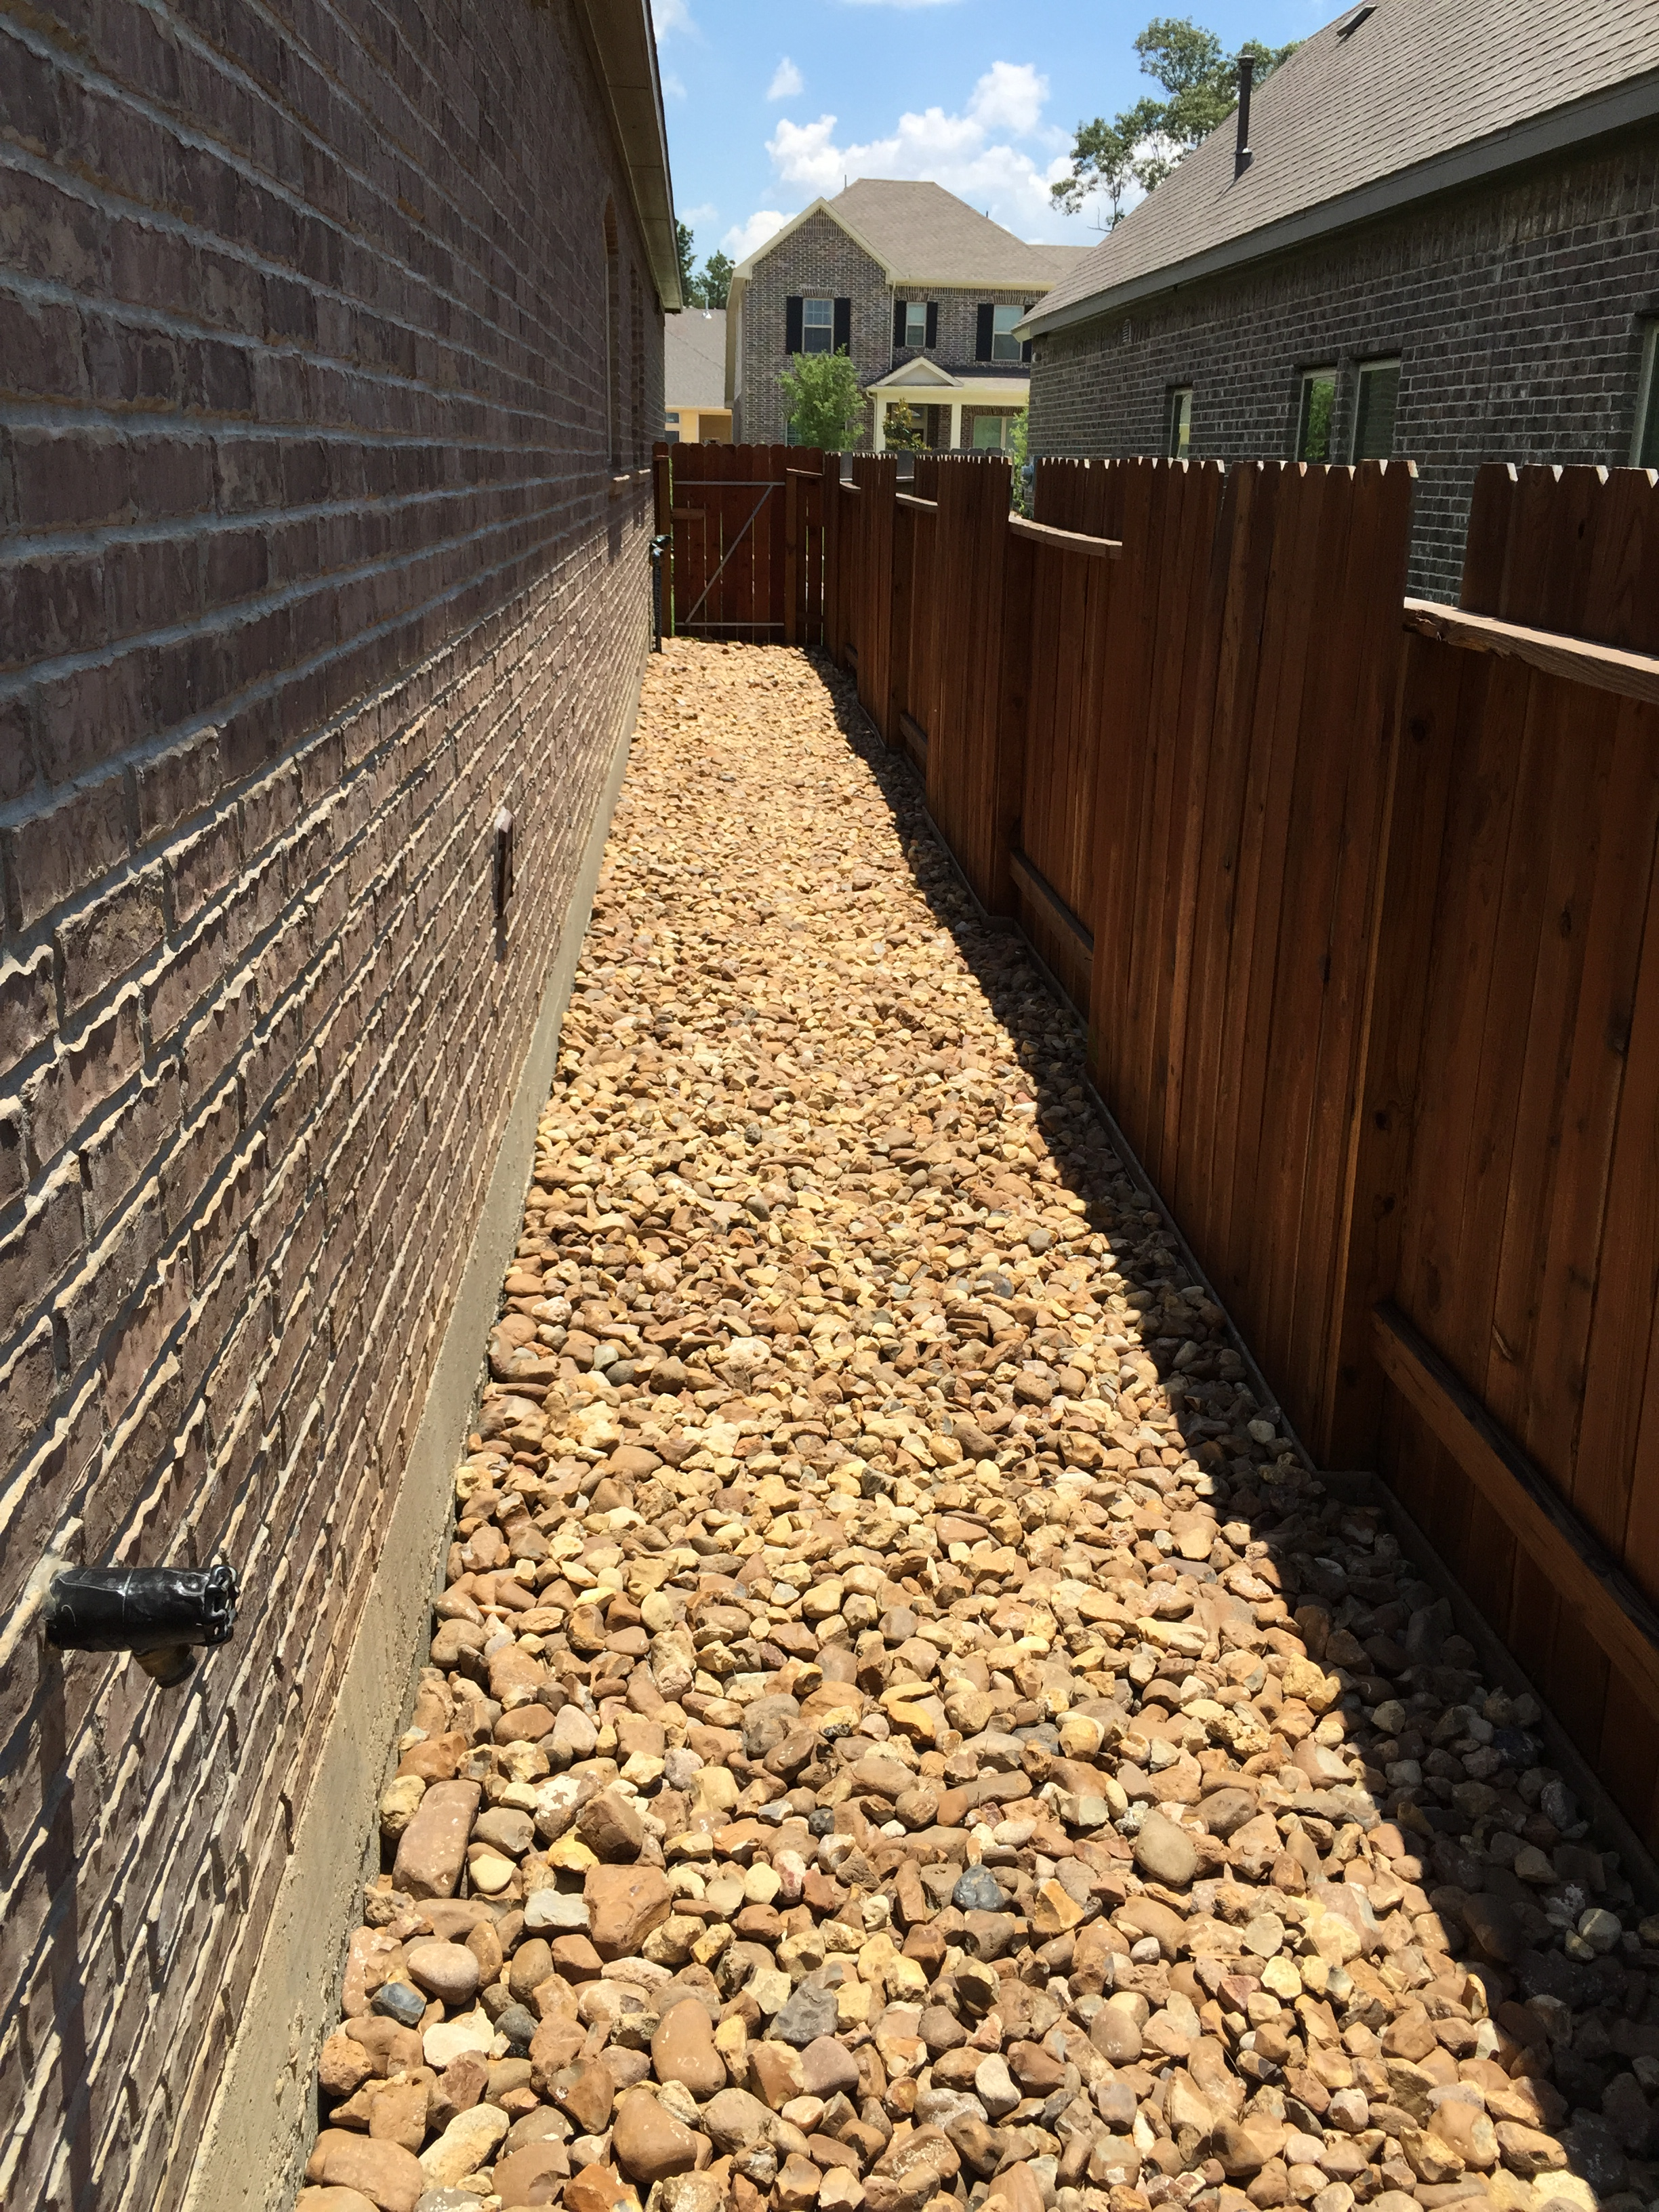 Pavestone Patio, Drainage, Pathway, Flower Bed, And Landscape Lighting